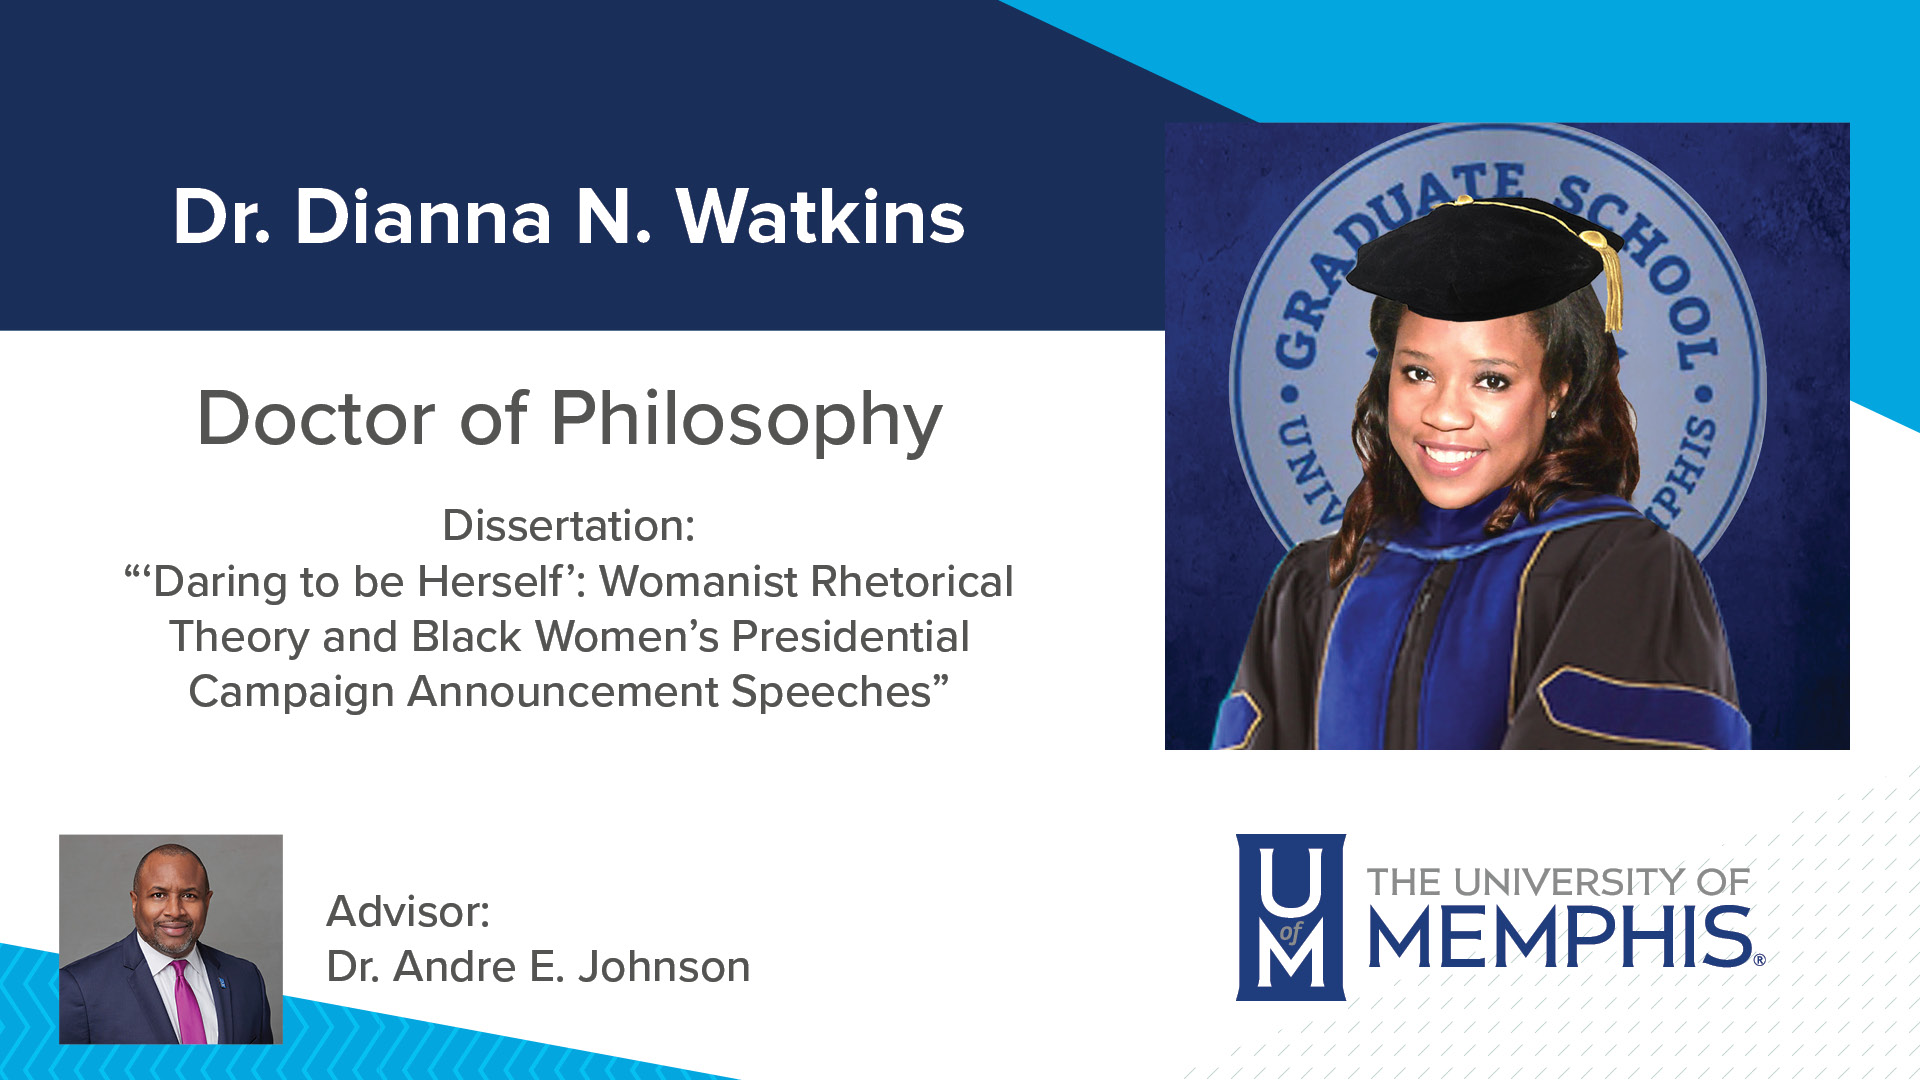 """Dr. Dianna N. Watkins Dissertation: """"'Daring to be Herself': Womanist Rhetorical Theory and Black Women's Presidential Campaign Announcement Speeches"""" Major Professor: Dr. Andre E Johnson"""